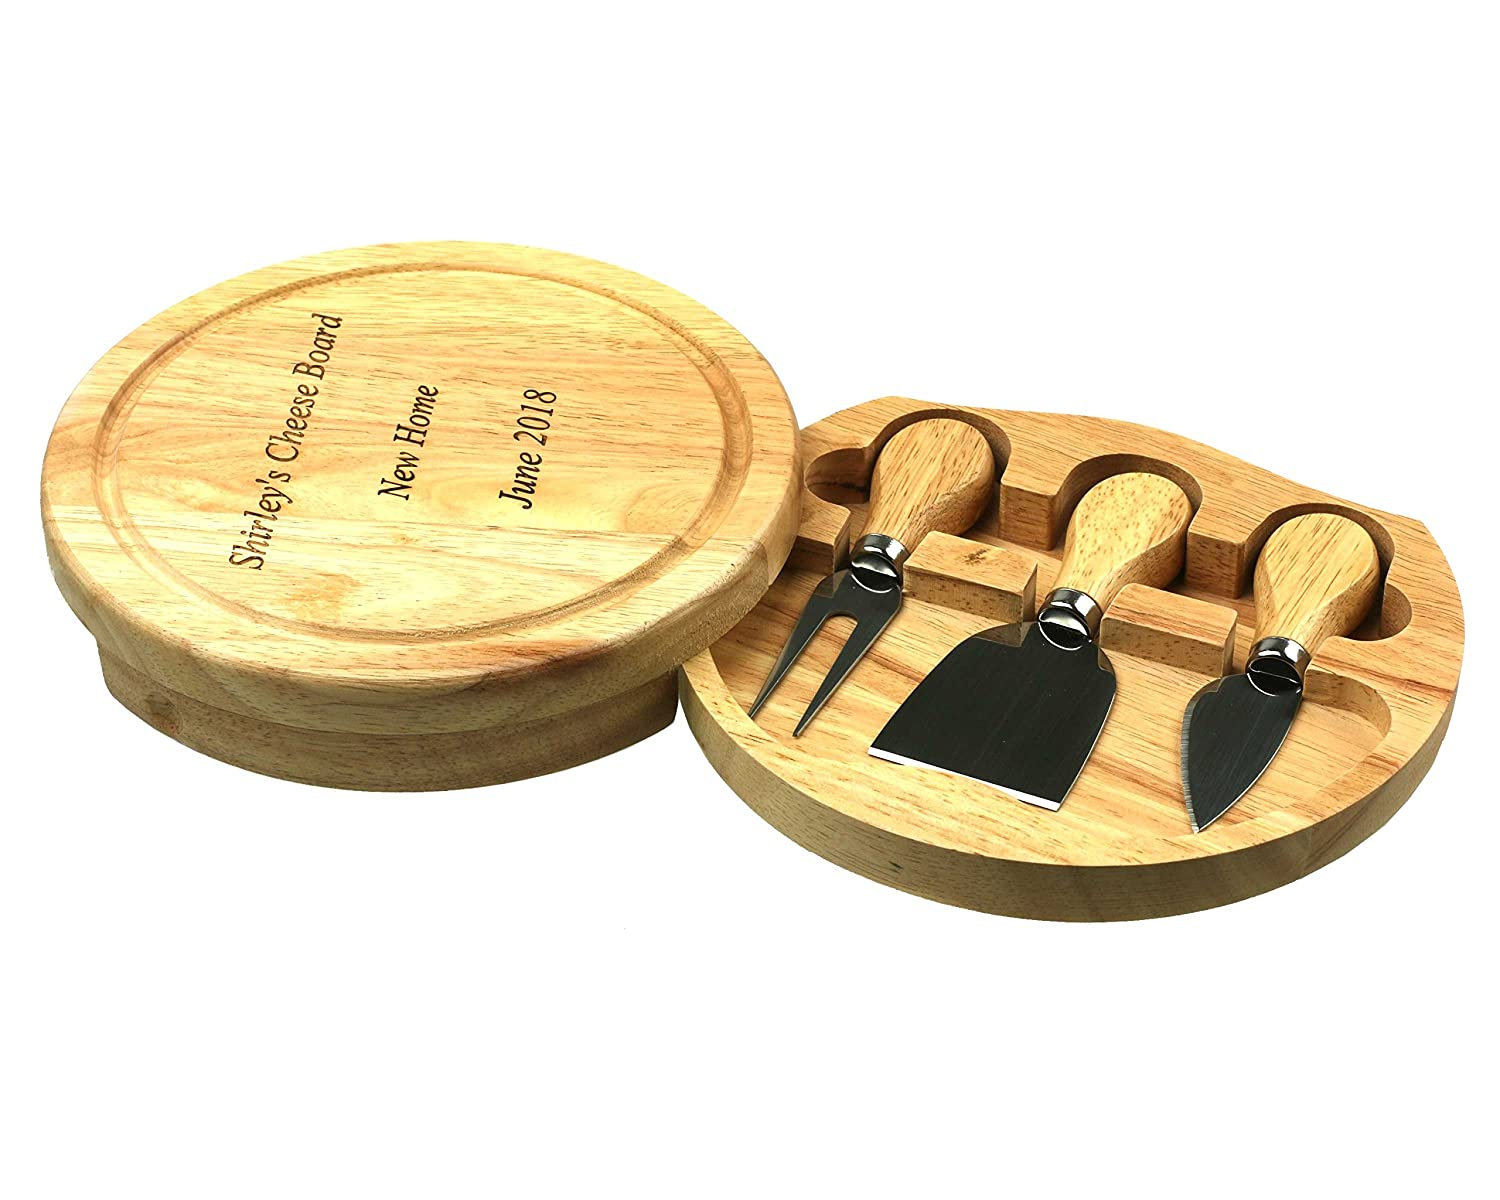 Customised/Personalised Wood Cheese Board & Knife Gift Set | 19cm Round Wooden CheeseBoard Set | Wedding, Christmas, Fathers, Mothers Day, House Warming Present Cathcart Elliot